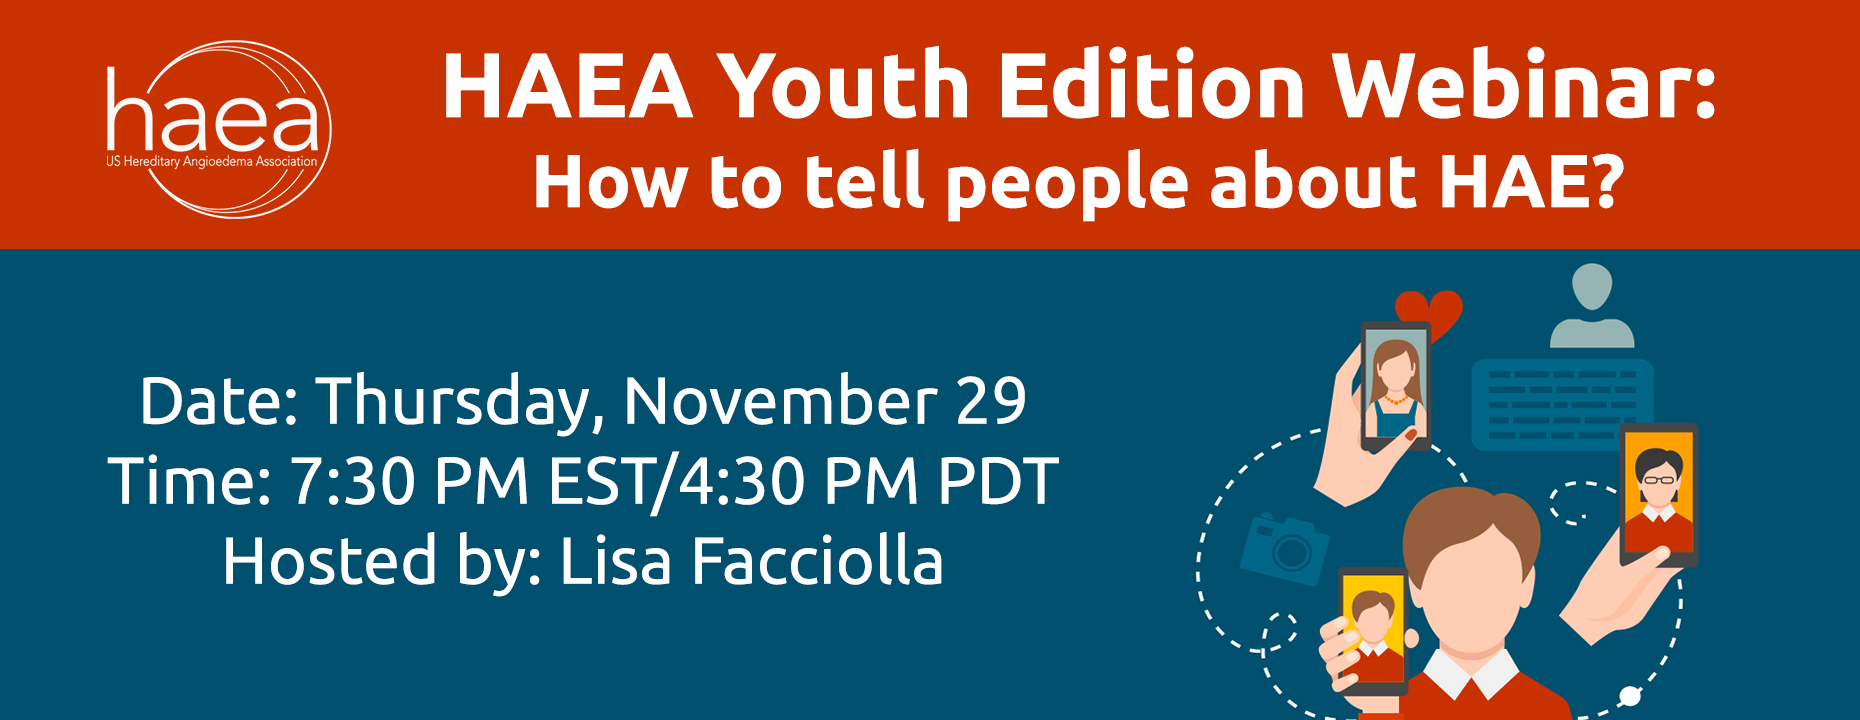 HAEA Youth Webinar